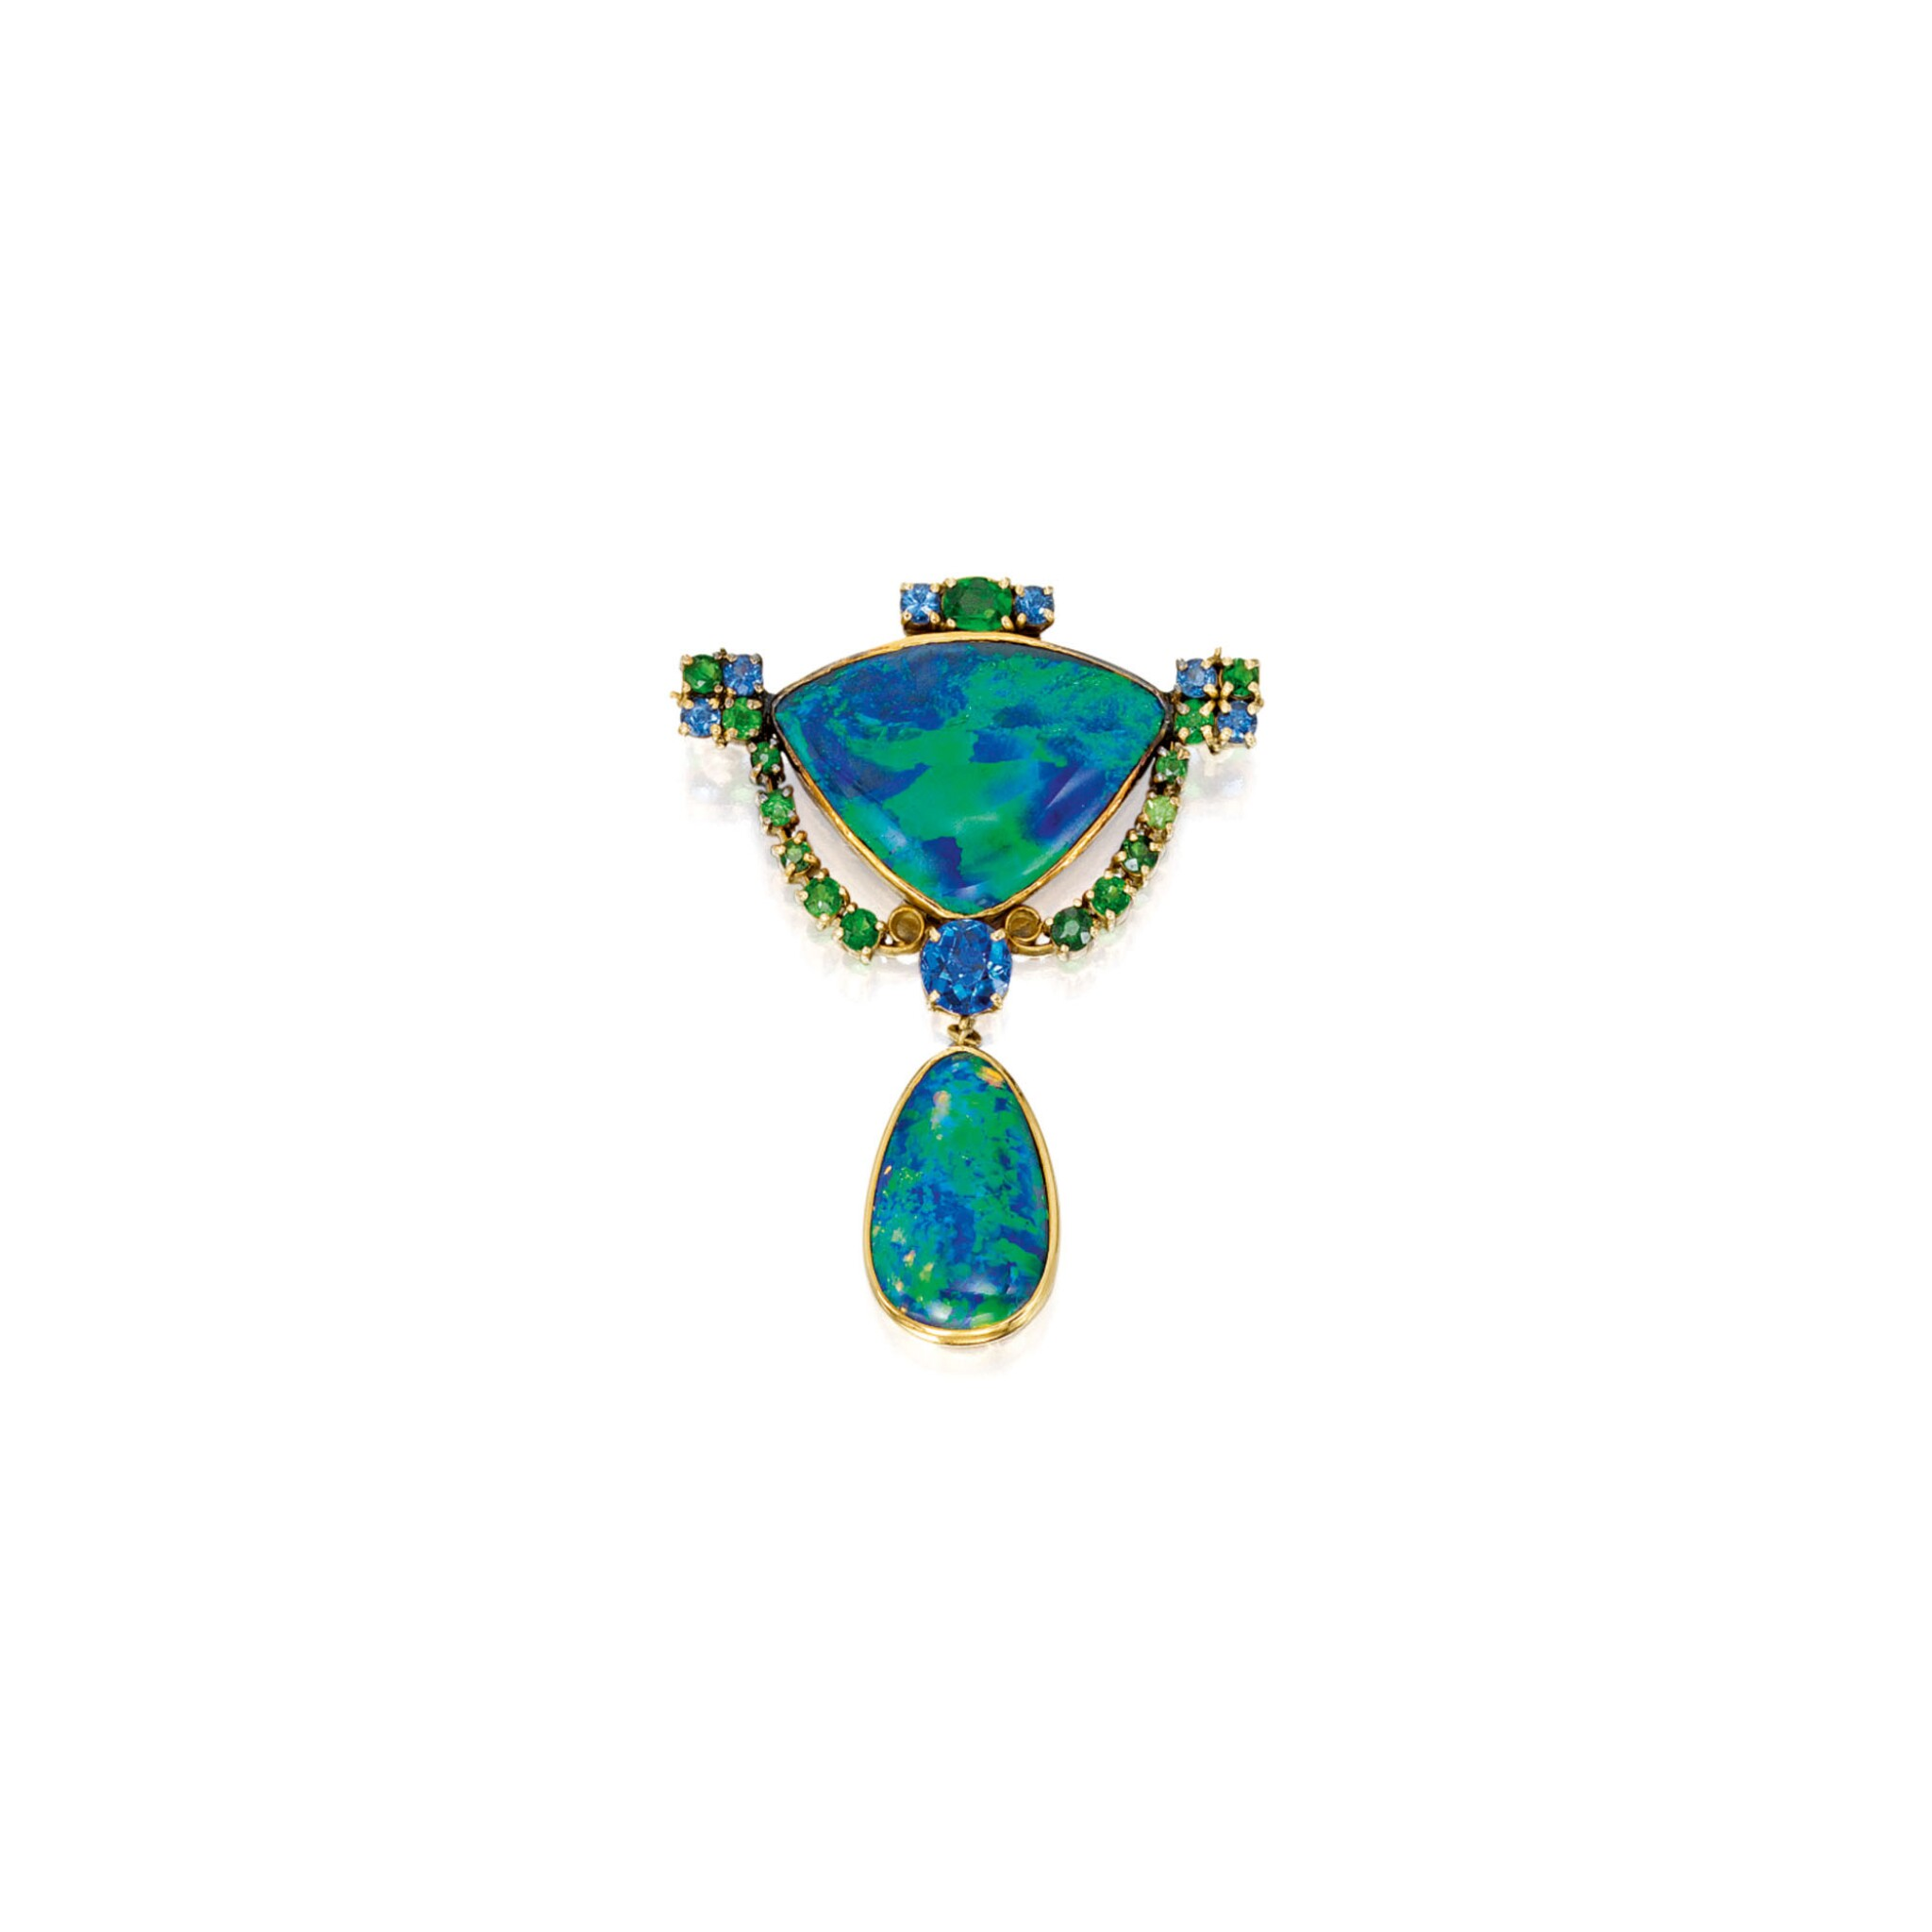 View full screen - View 1 of Lot 411. BLACK OPAL, SAPPHIRE AND DEMANTOID BROOCH, TIFFANY & CO., DESIGNED BY LOUIS COMFORT TIFFANY | 黑色蛋白石配藍寶石及翠榴石別針,蒂芙尼.